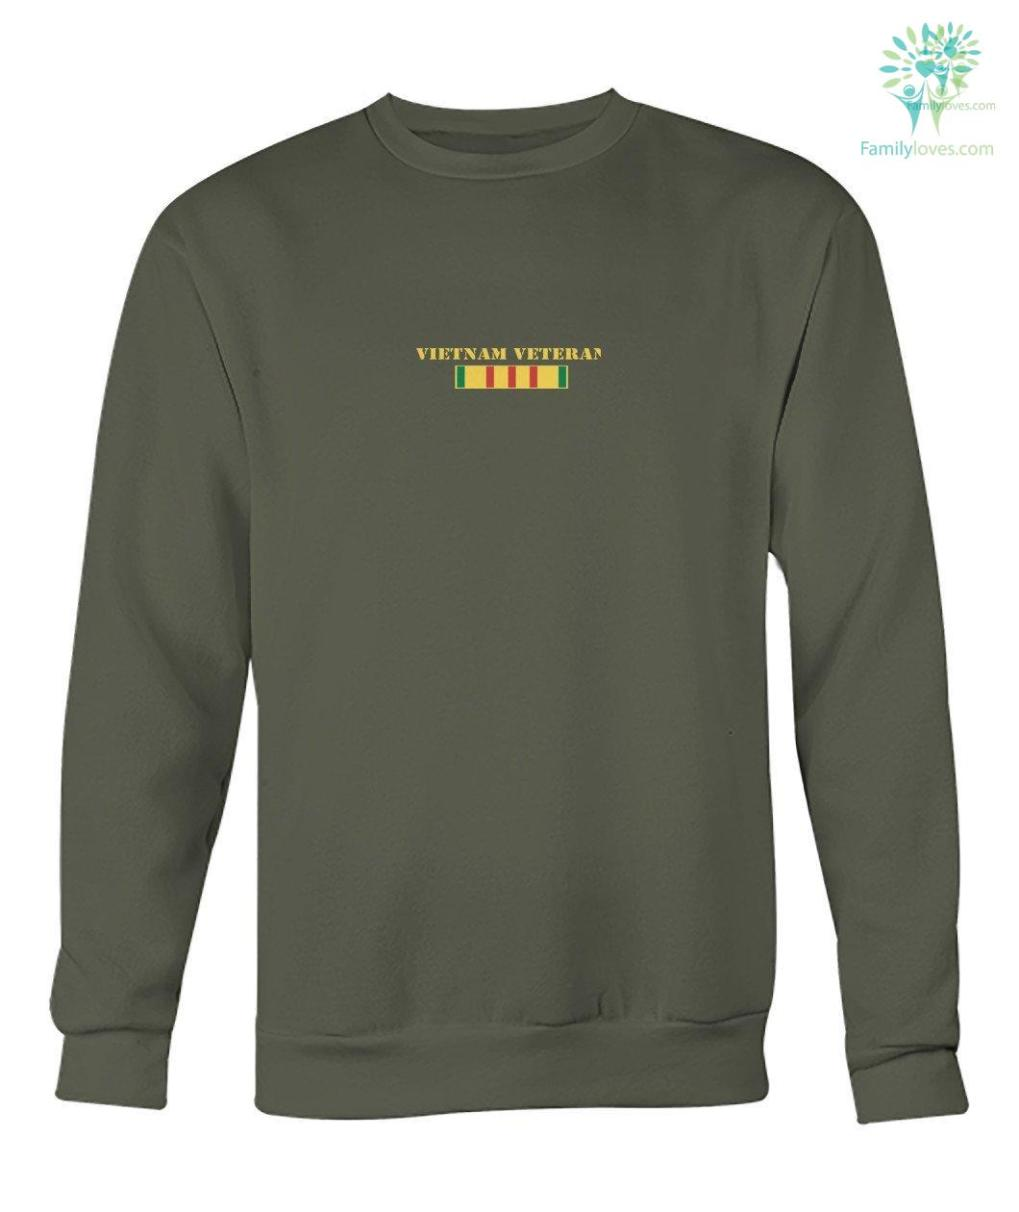 familyloves.com ALL GAVE SOME, 58479 GAVE ALL, Vietnam Veterans of America, Crew Neck Sweatshirt %tag